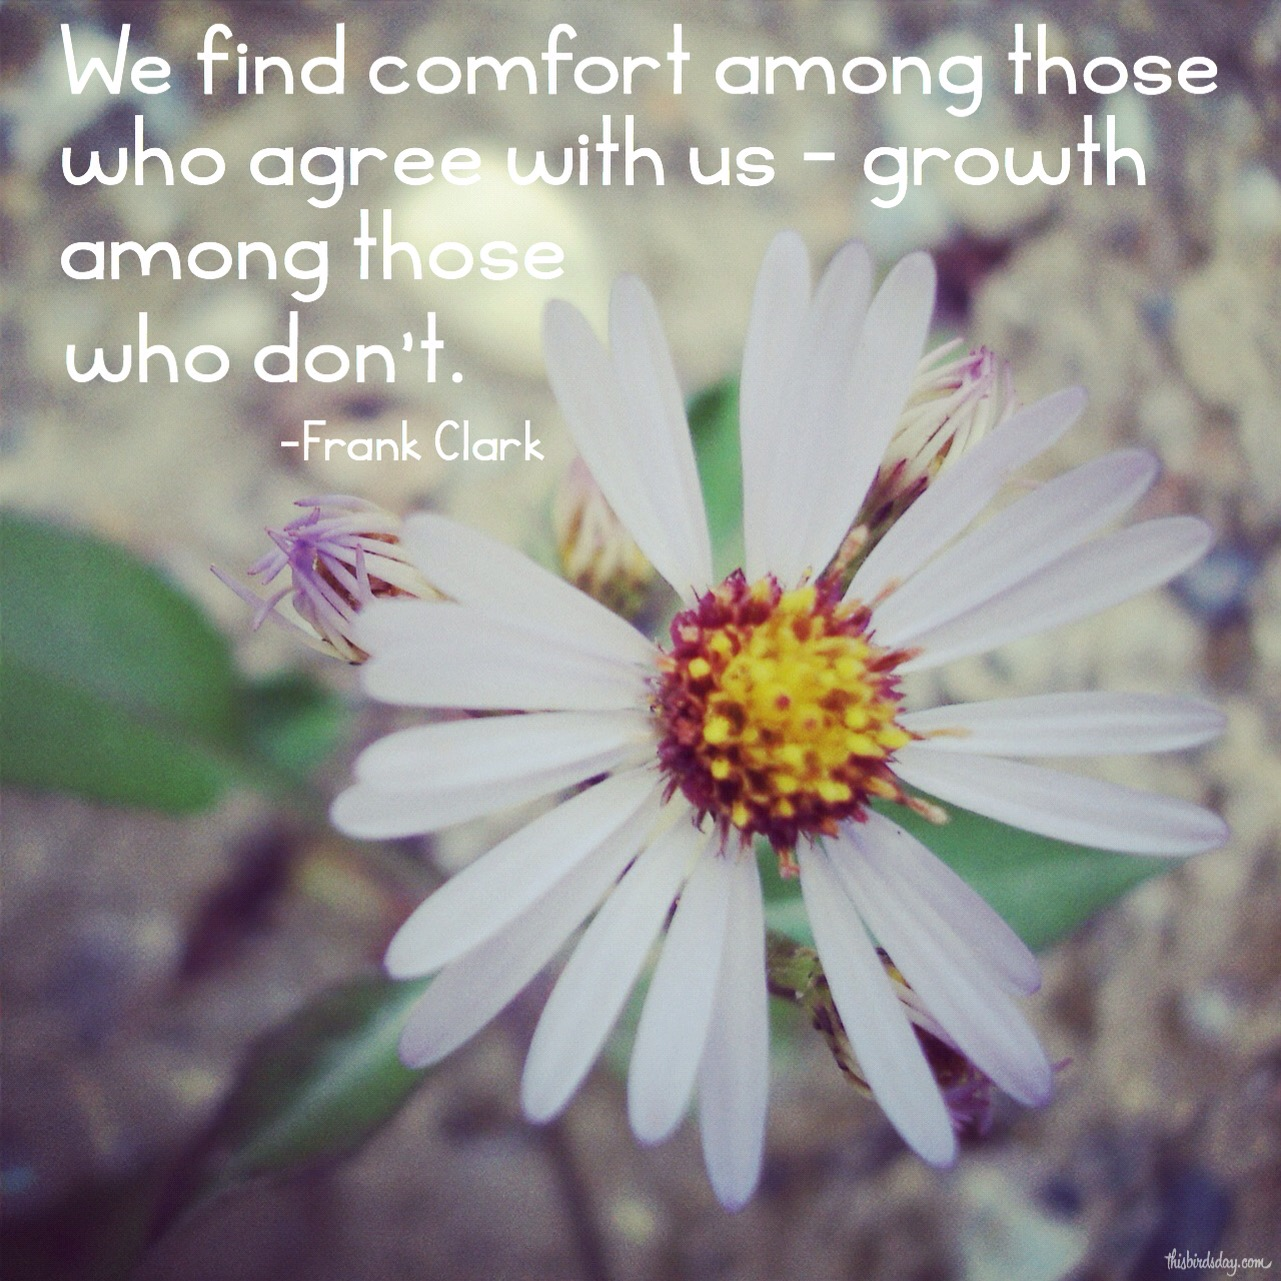 """We find comfort among those who agree with us - growth among those who don't."" Frank Clark Photo dopyright Sheri Landry (thisbirdsday.com)"